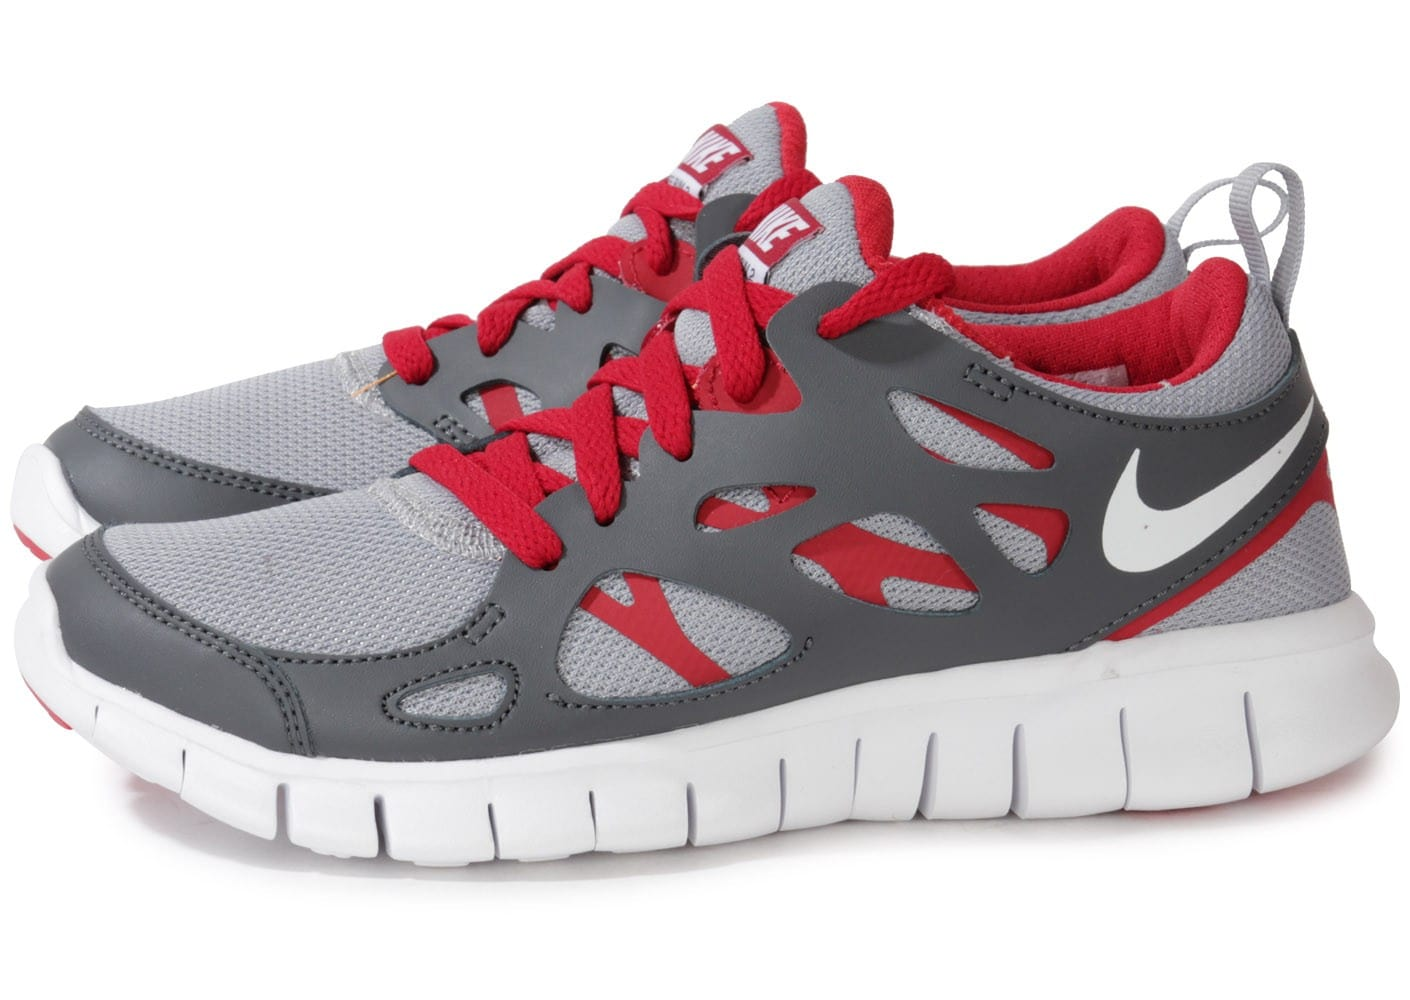 official photos 8473c 925a4 ... where can i buy cliquez pour zoomer chaussures nike free run 2 junior  grise et rouge ...